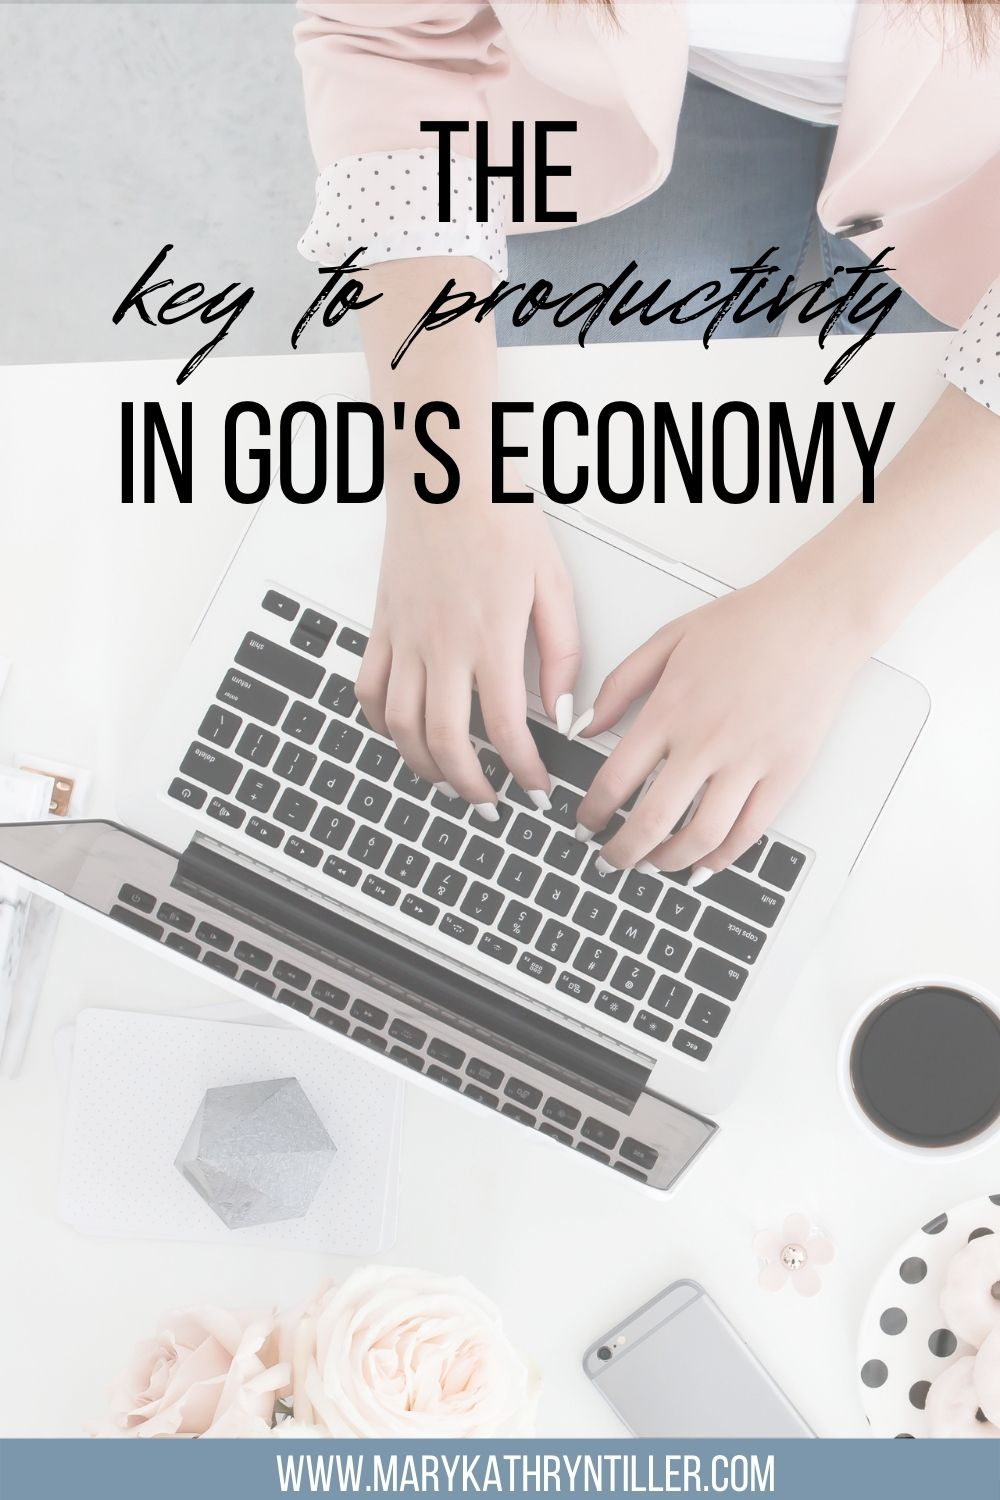 The Key to Productivity in God's economy